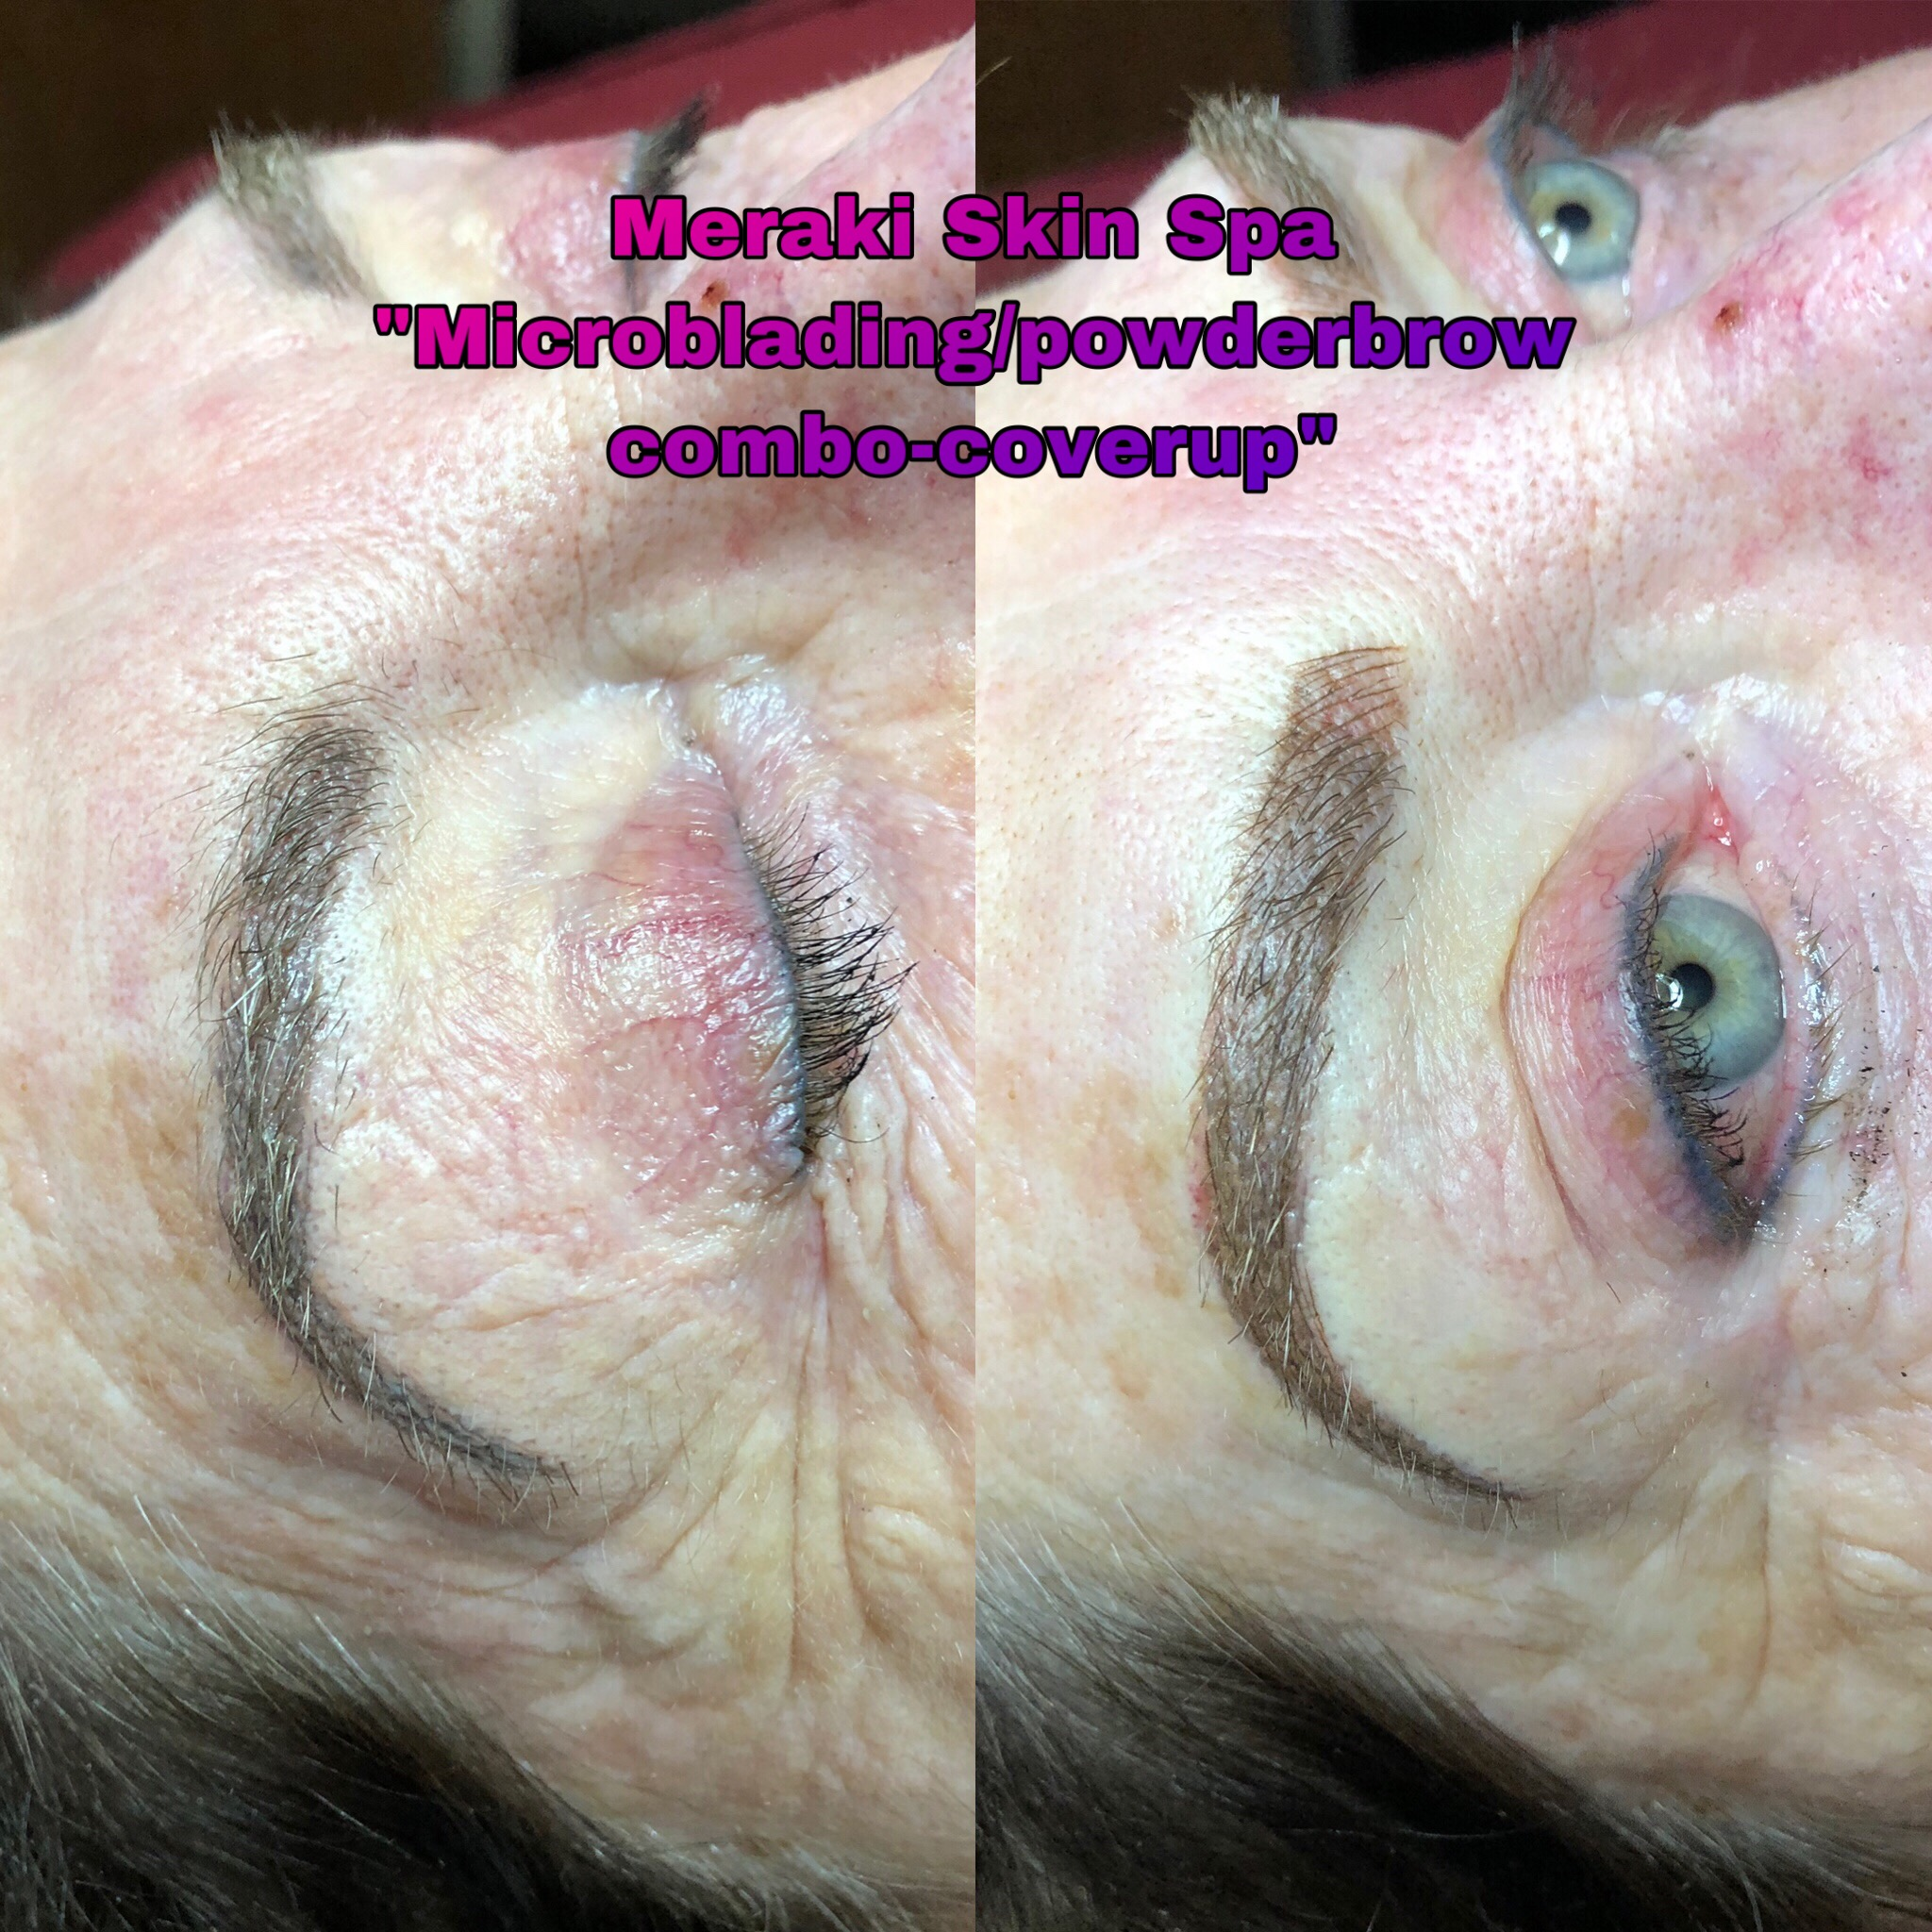 3 year old coverup, permanent eyebrow tattooing, microblading-powderbrow combo meridian idaho